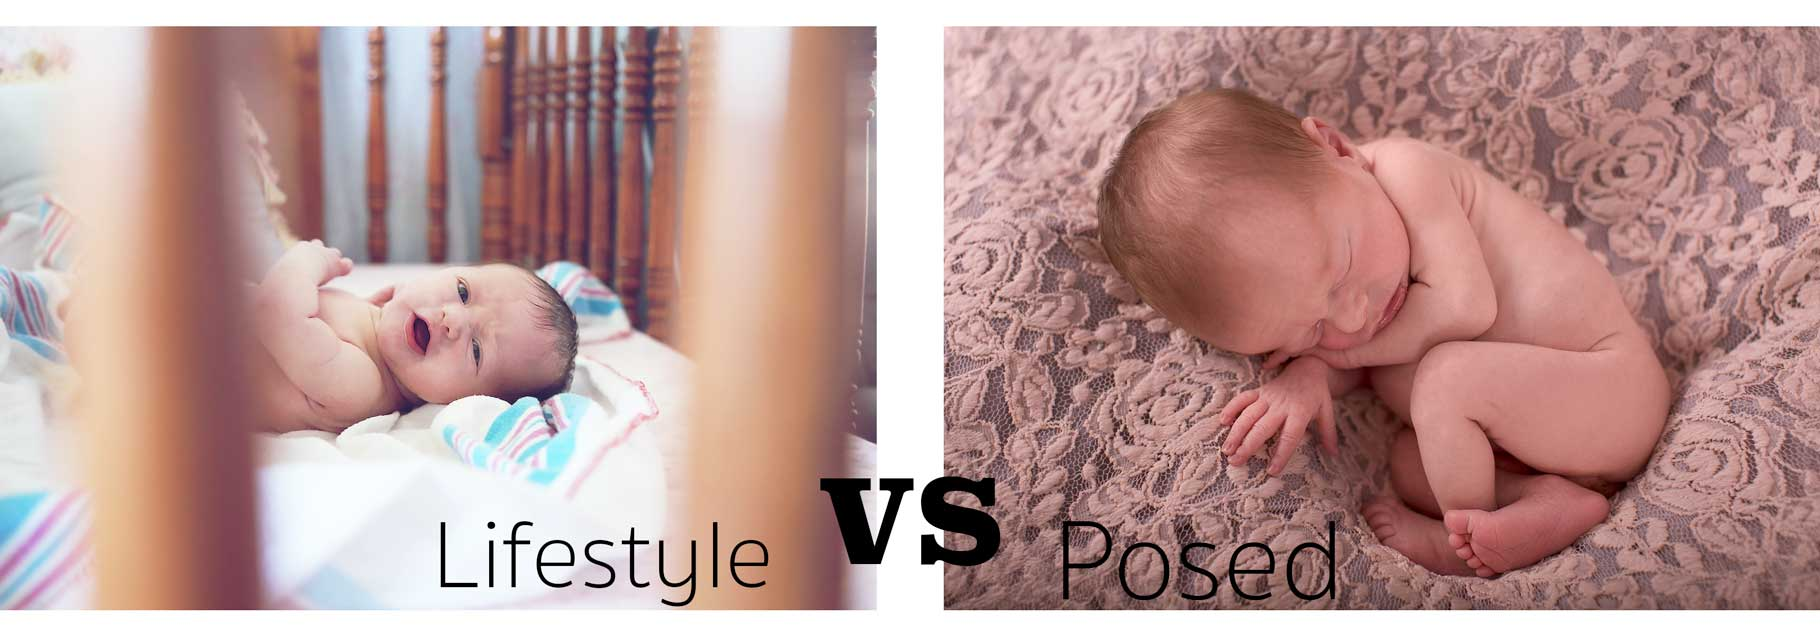 Image for blog lifestyle session vs posed newborn session with two babies pictures compared